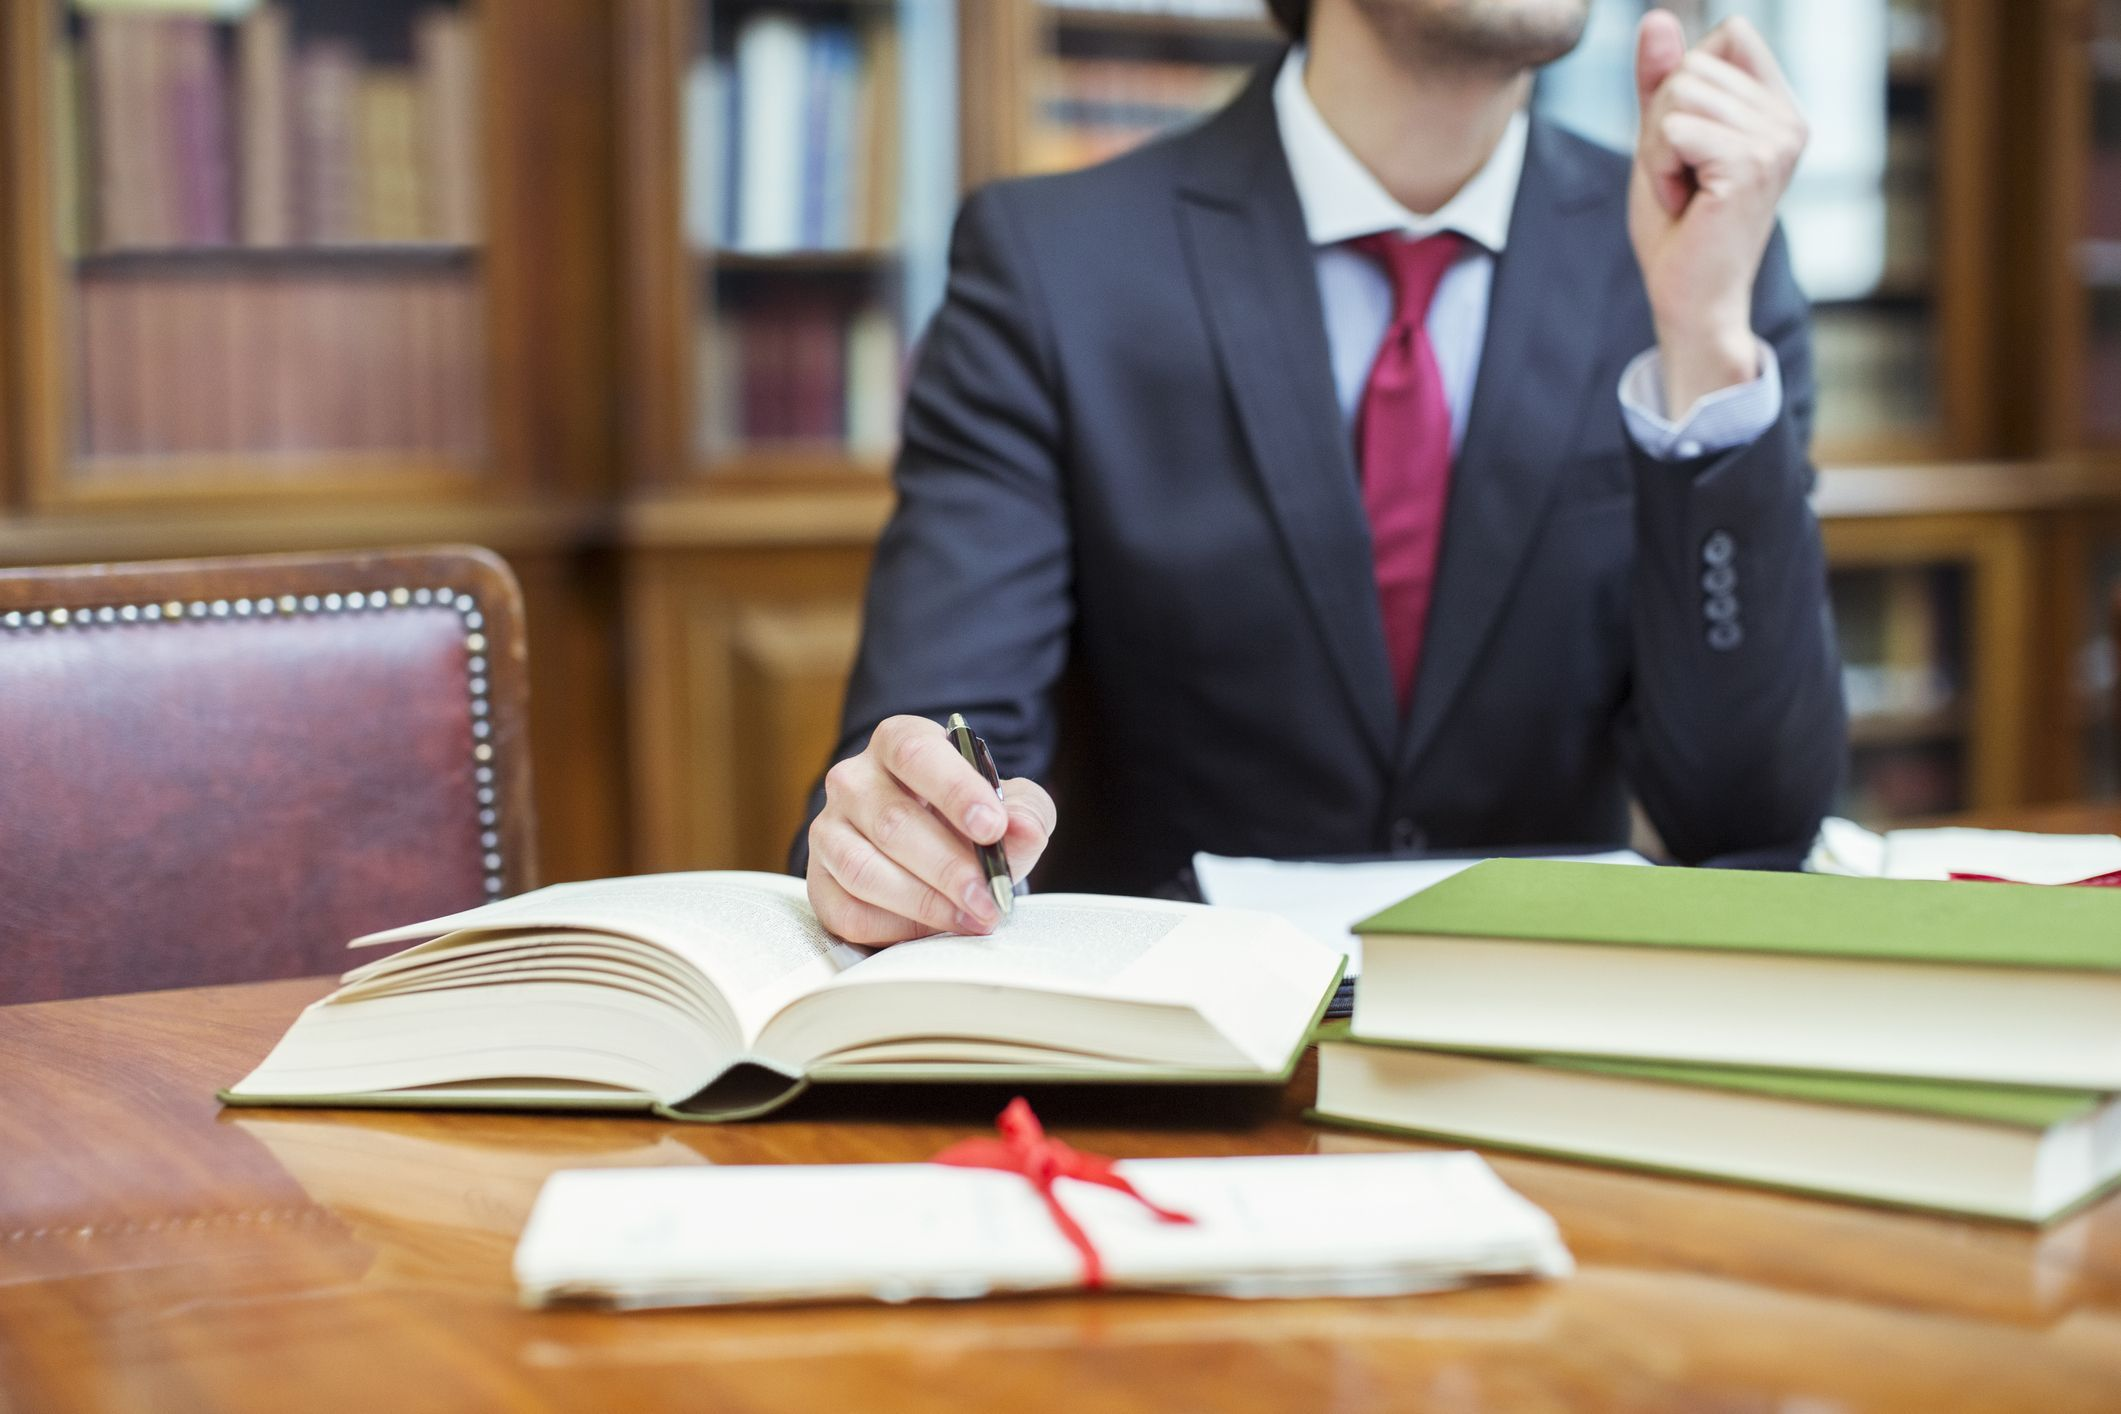 10 Top Tips For Starting A Law Career